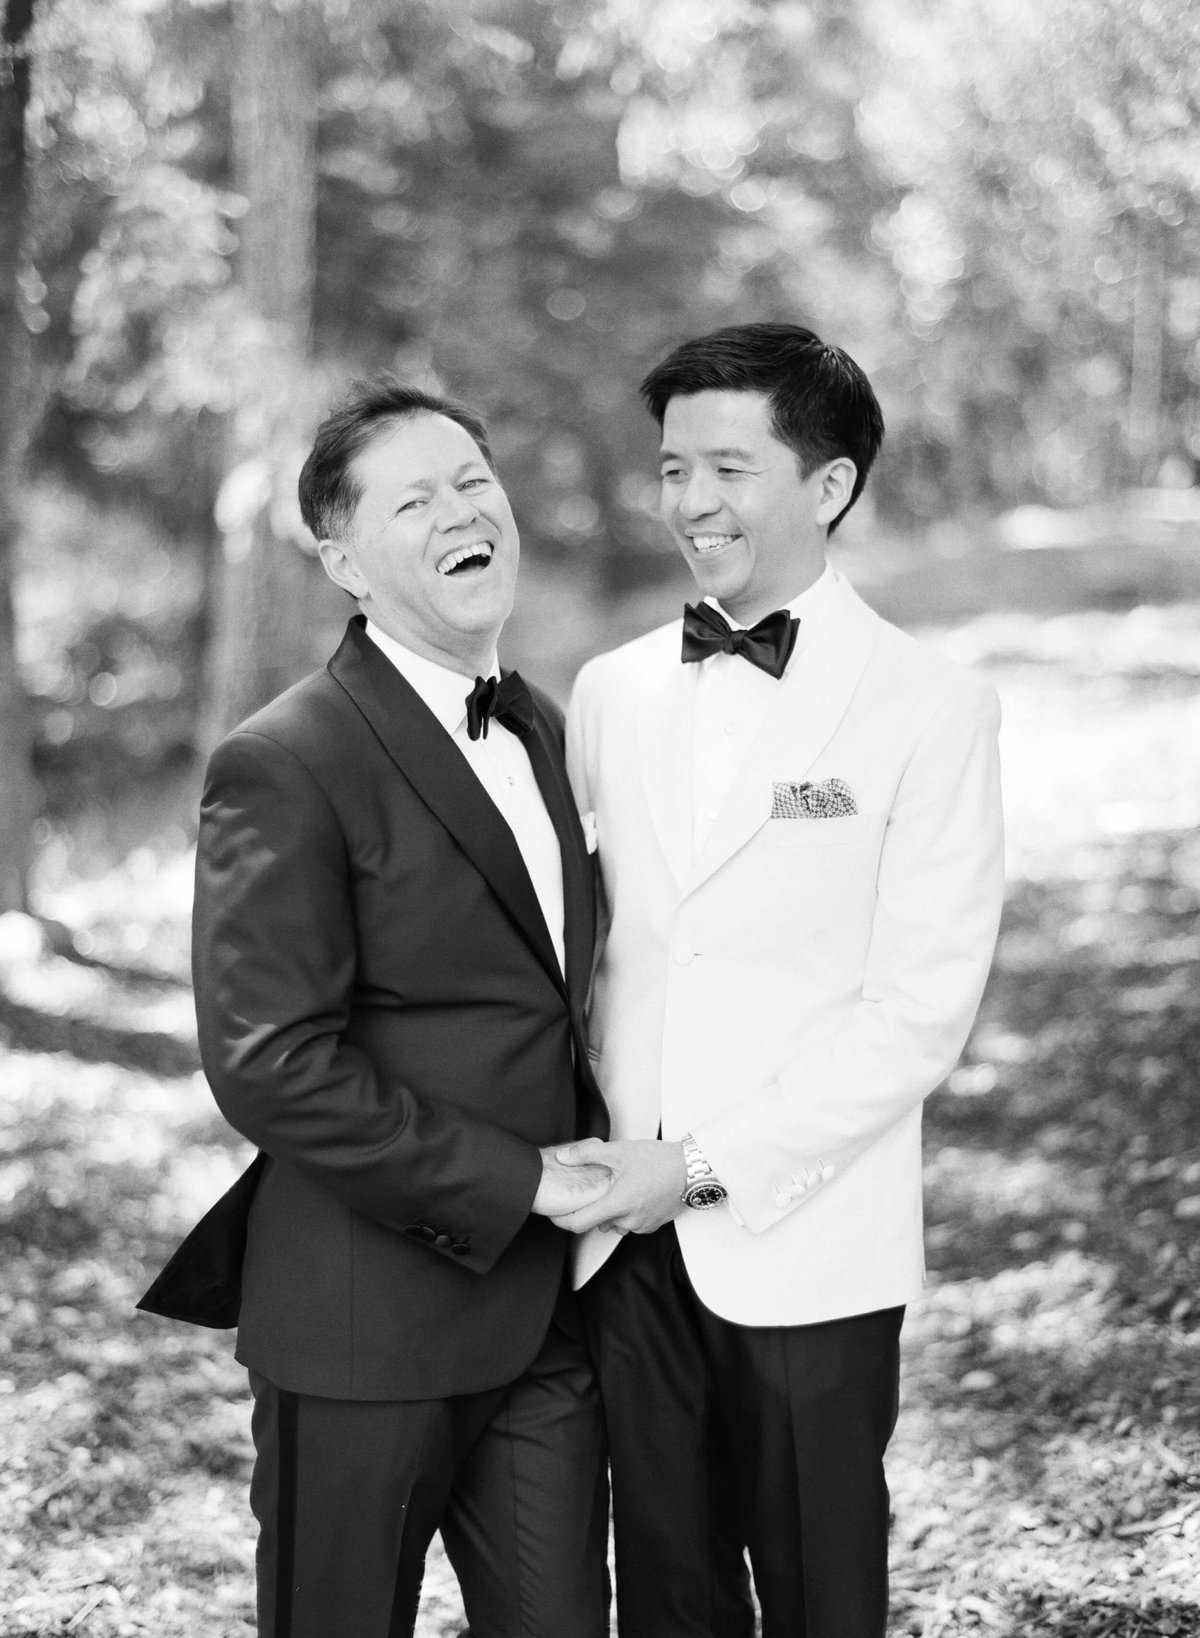 25-KTMerry-wedding-photography-samesex-preceremony